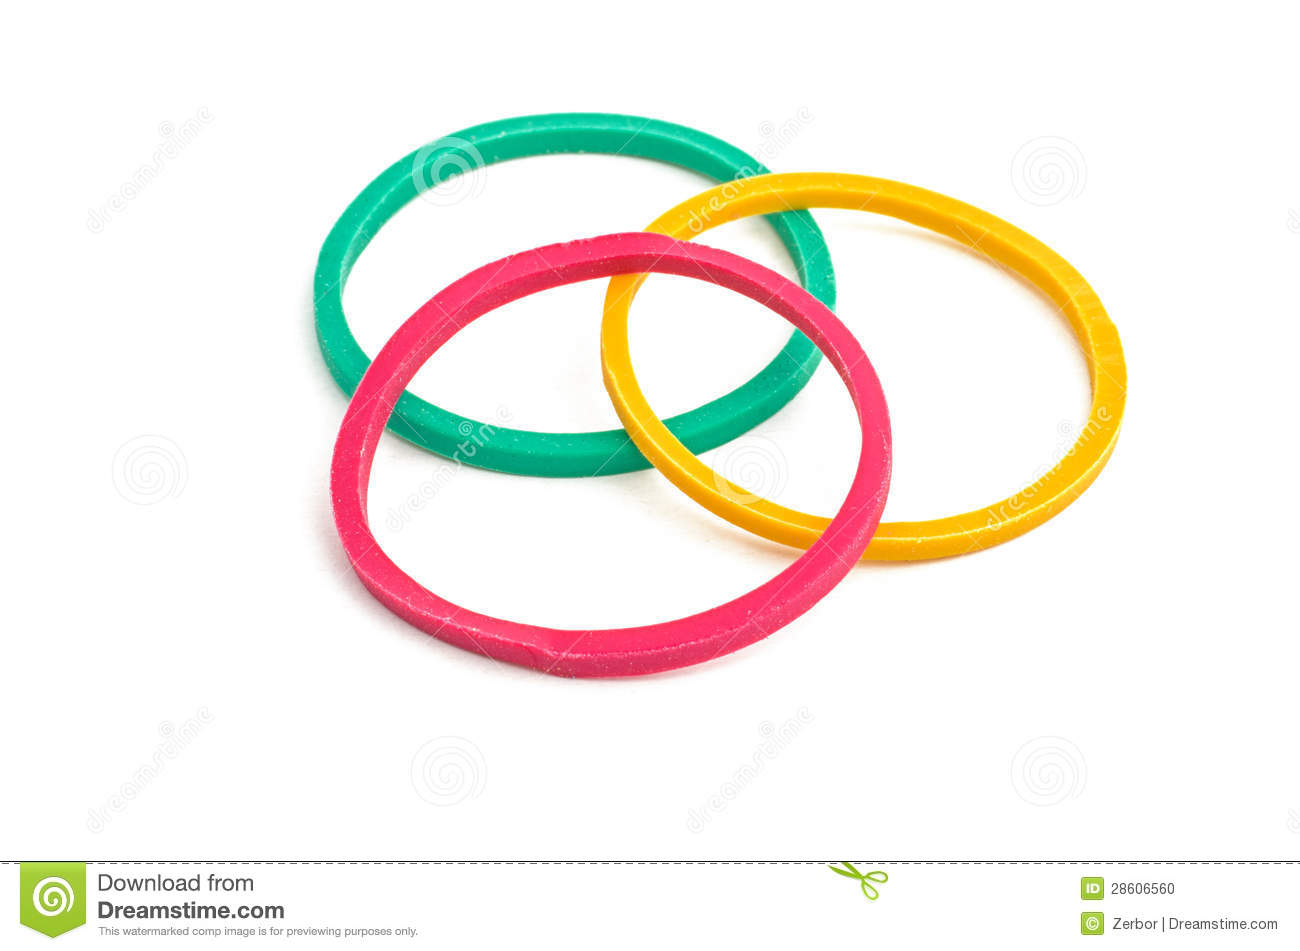 Three rubber bands